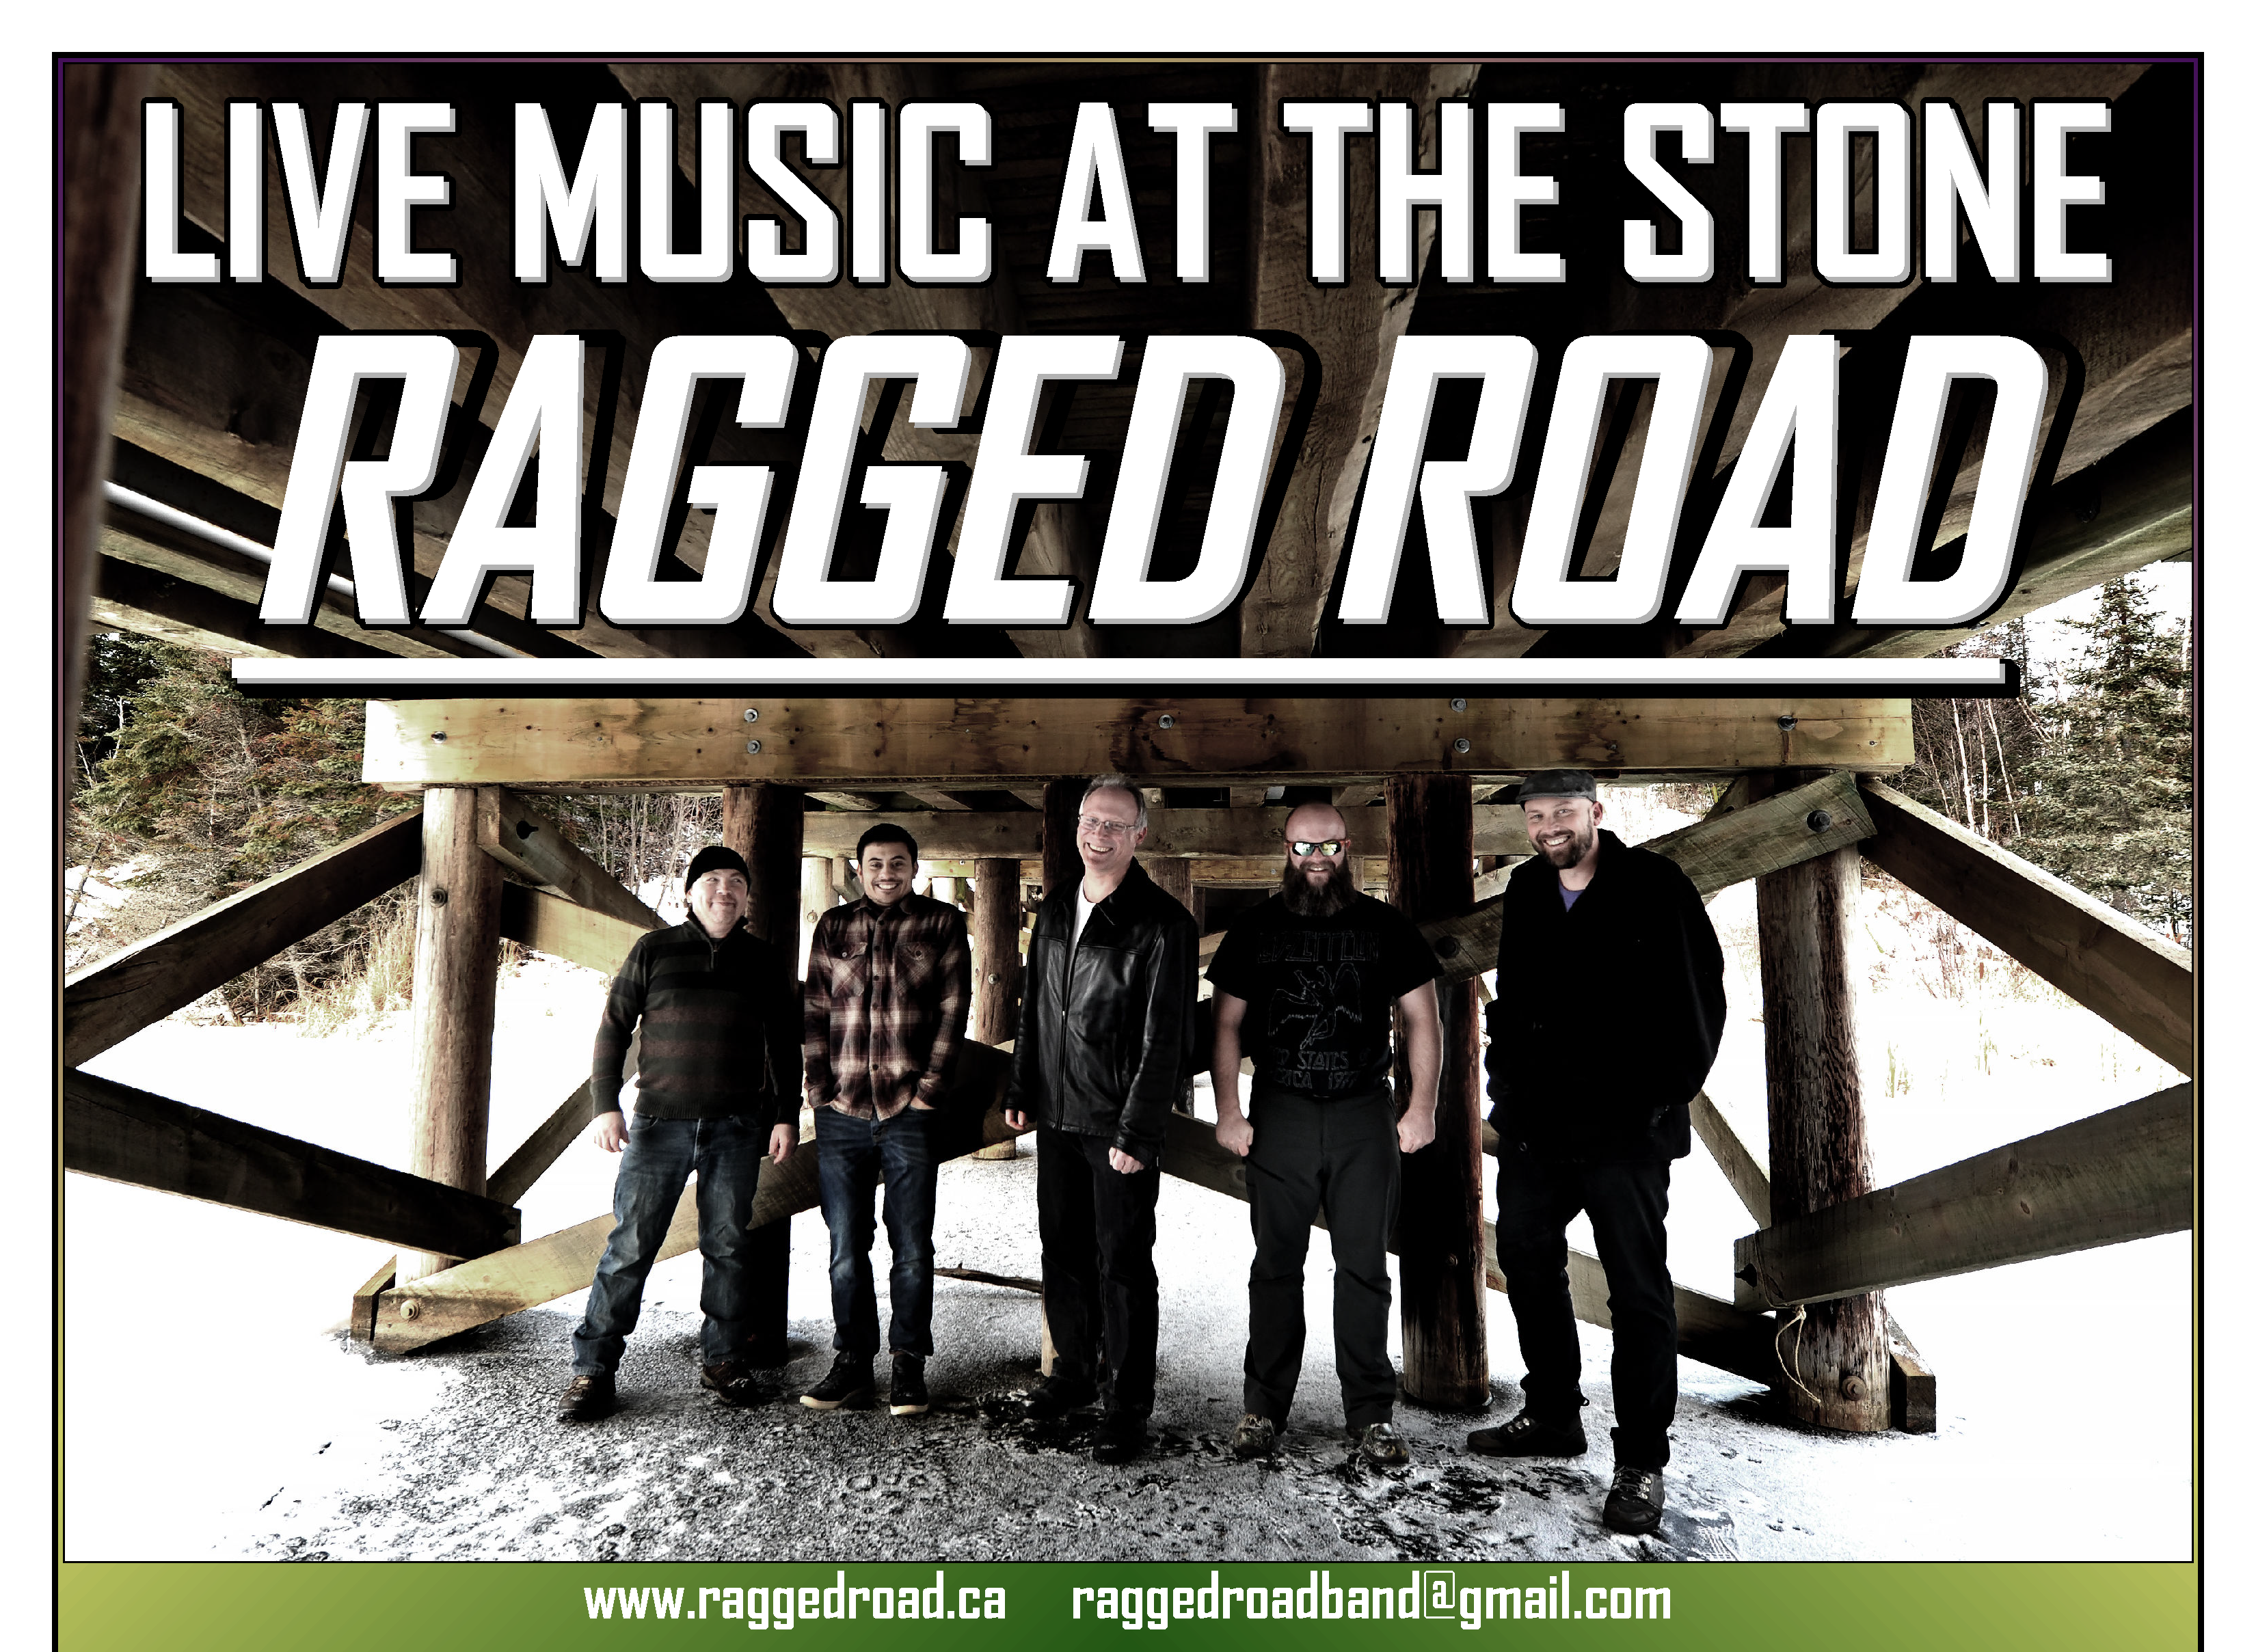 Ragged Road Plays the Stone